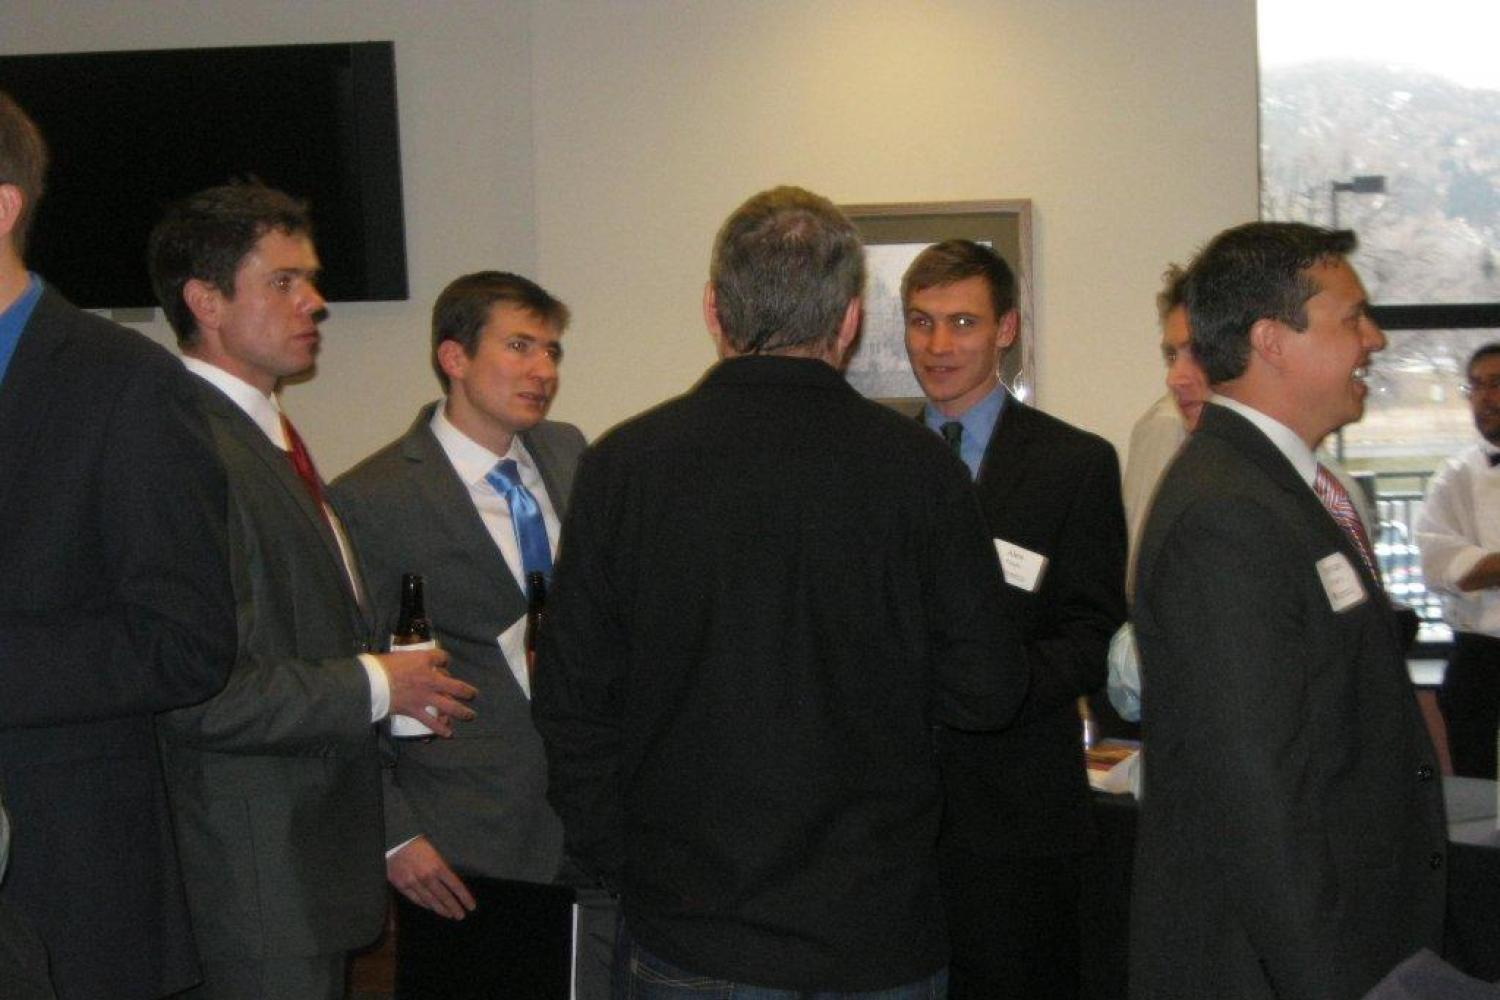 Students create professional connections with employers during the Reception Honoring Employers, sponsored by Husch Blackwell LLP.